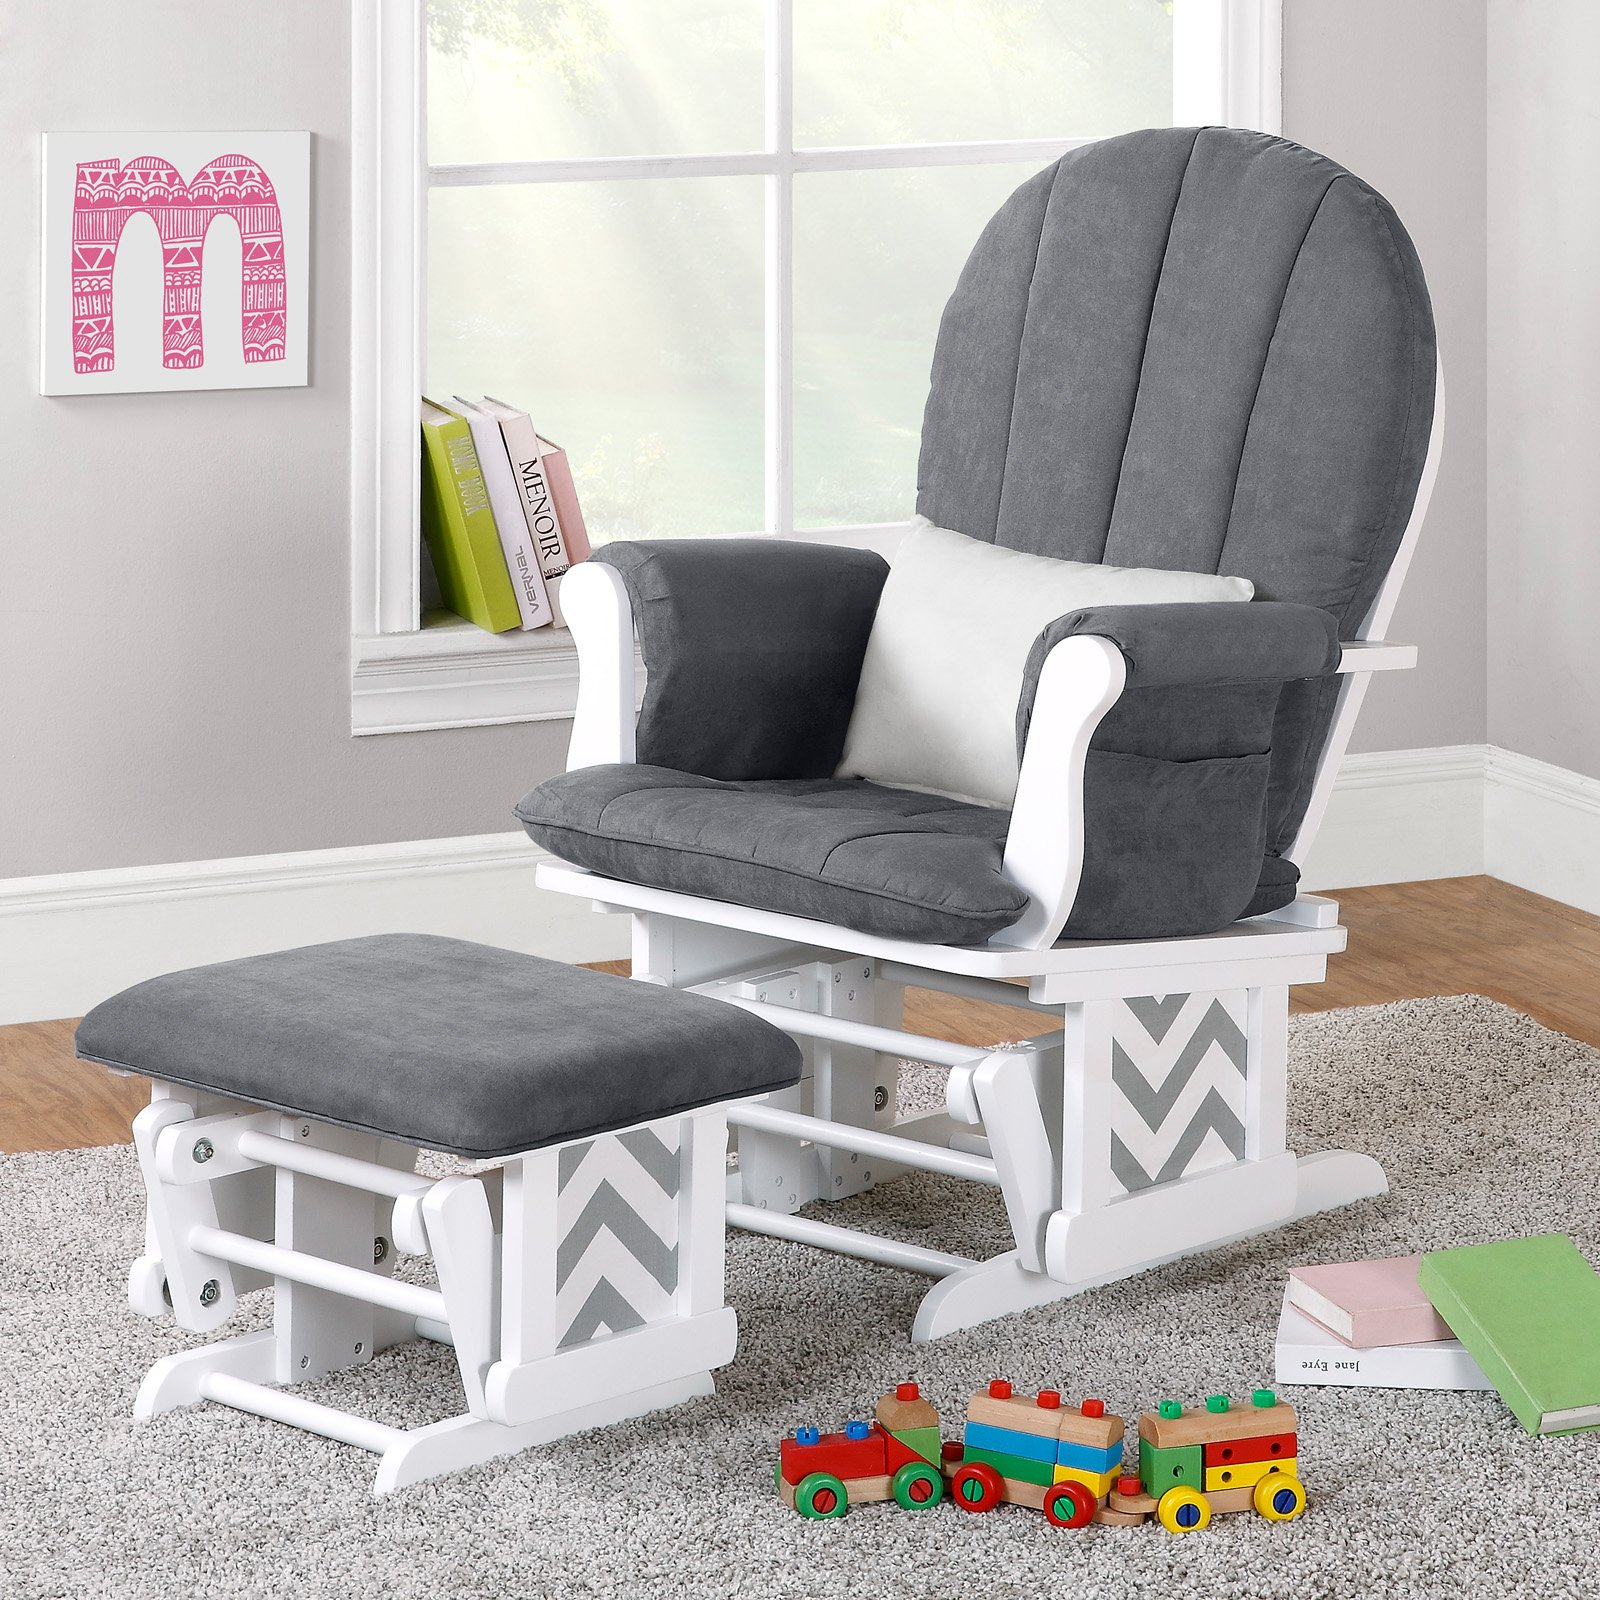 Baby Nursing Chair How To Decorate Babies And Moms Heaven Interior Design